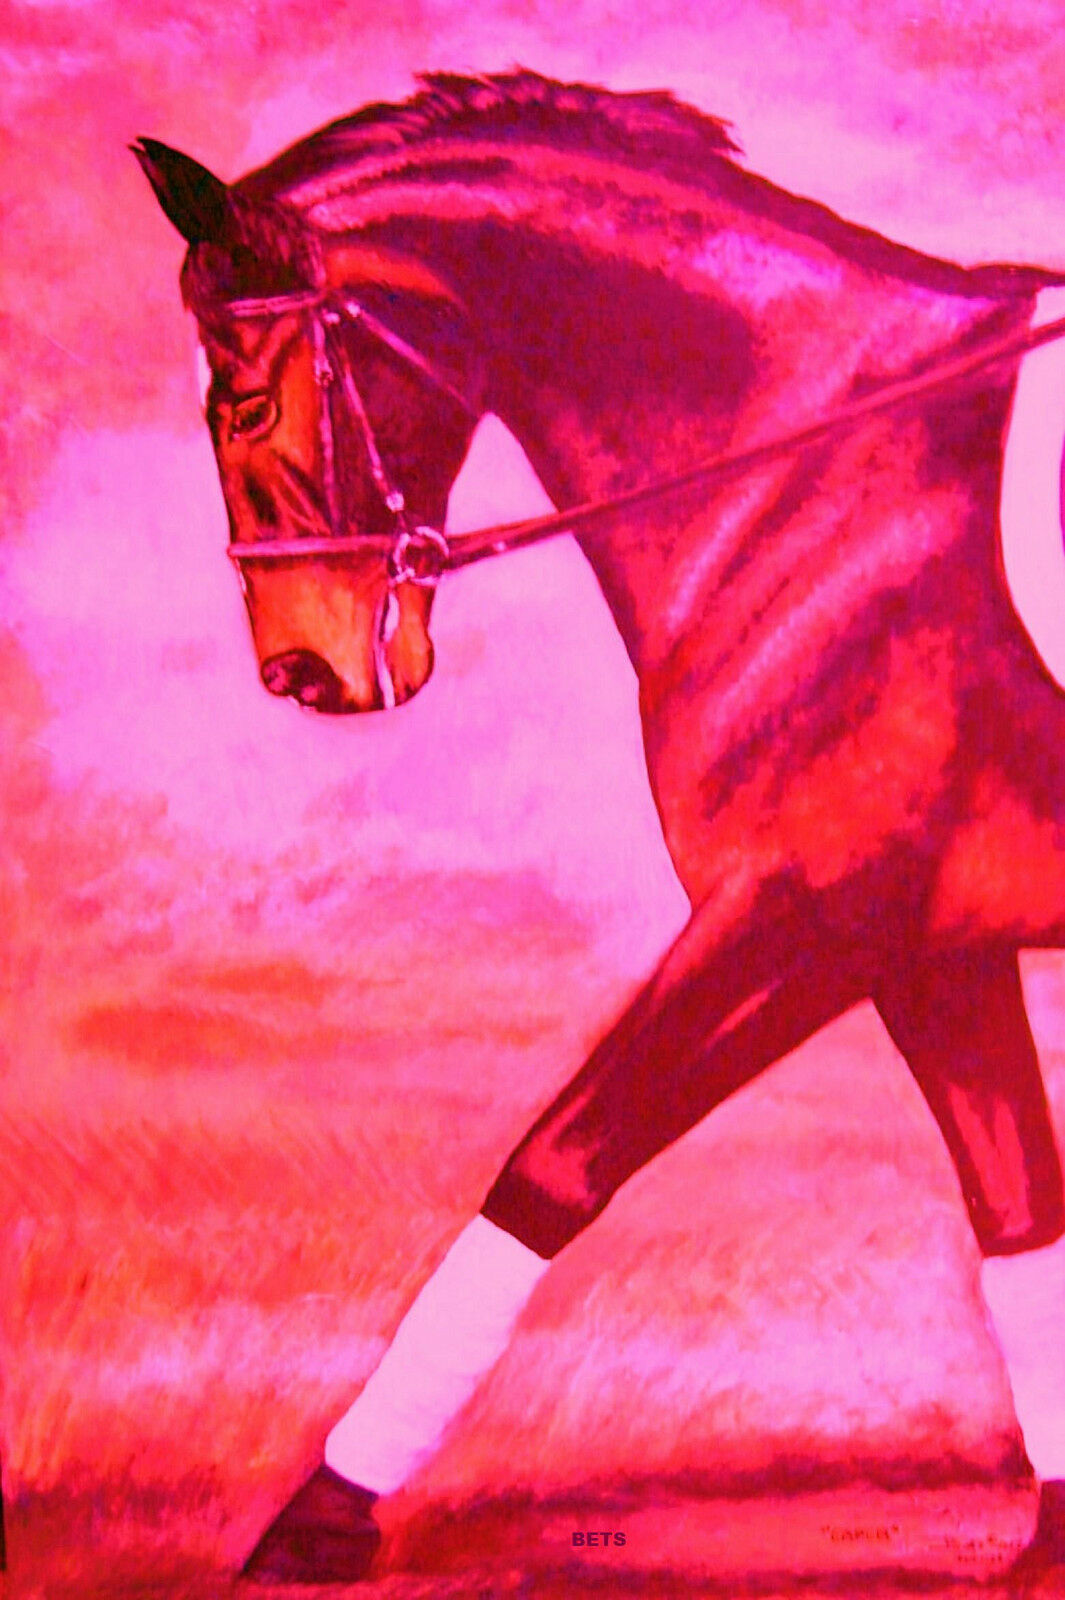 Giclee HORSE PRINT DRESSAGE Art CAPER by artist BETS 19 5 COLORS print Größe 14 X 19 BETS 7efe44